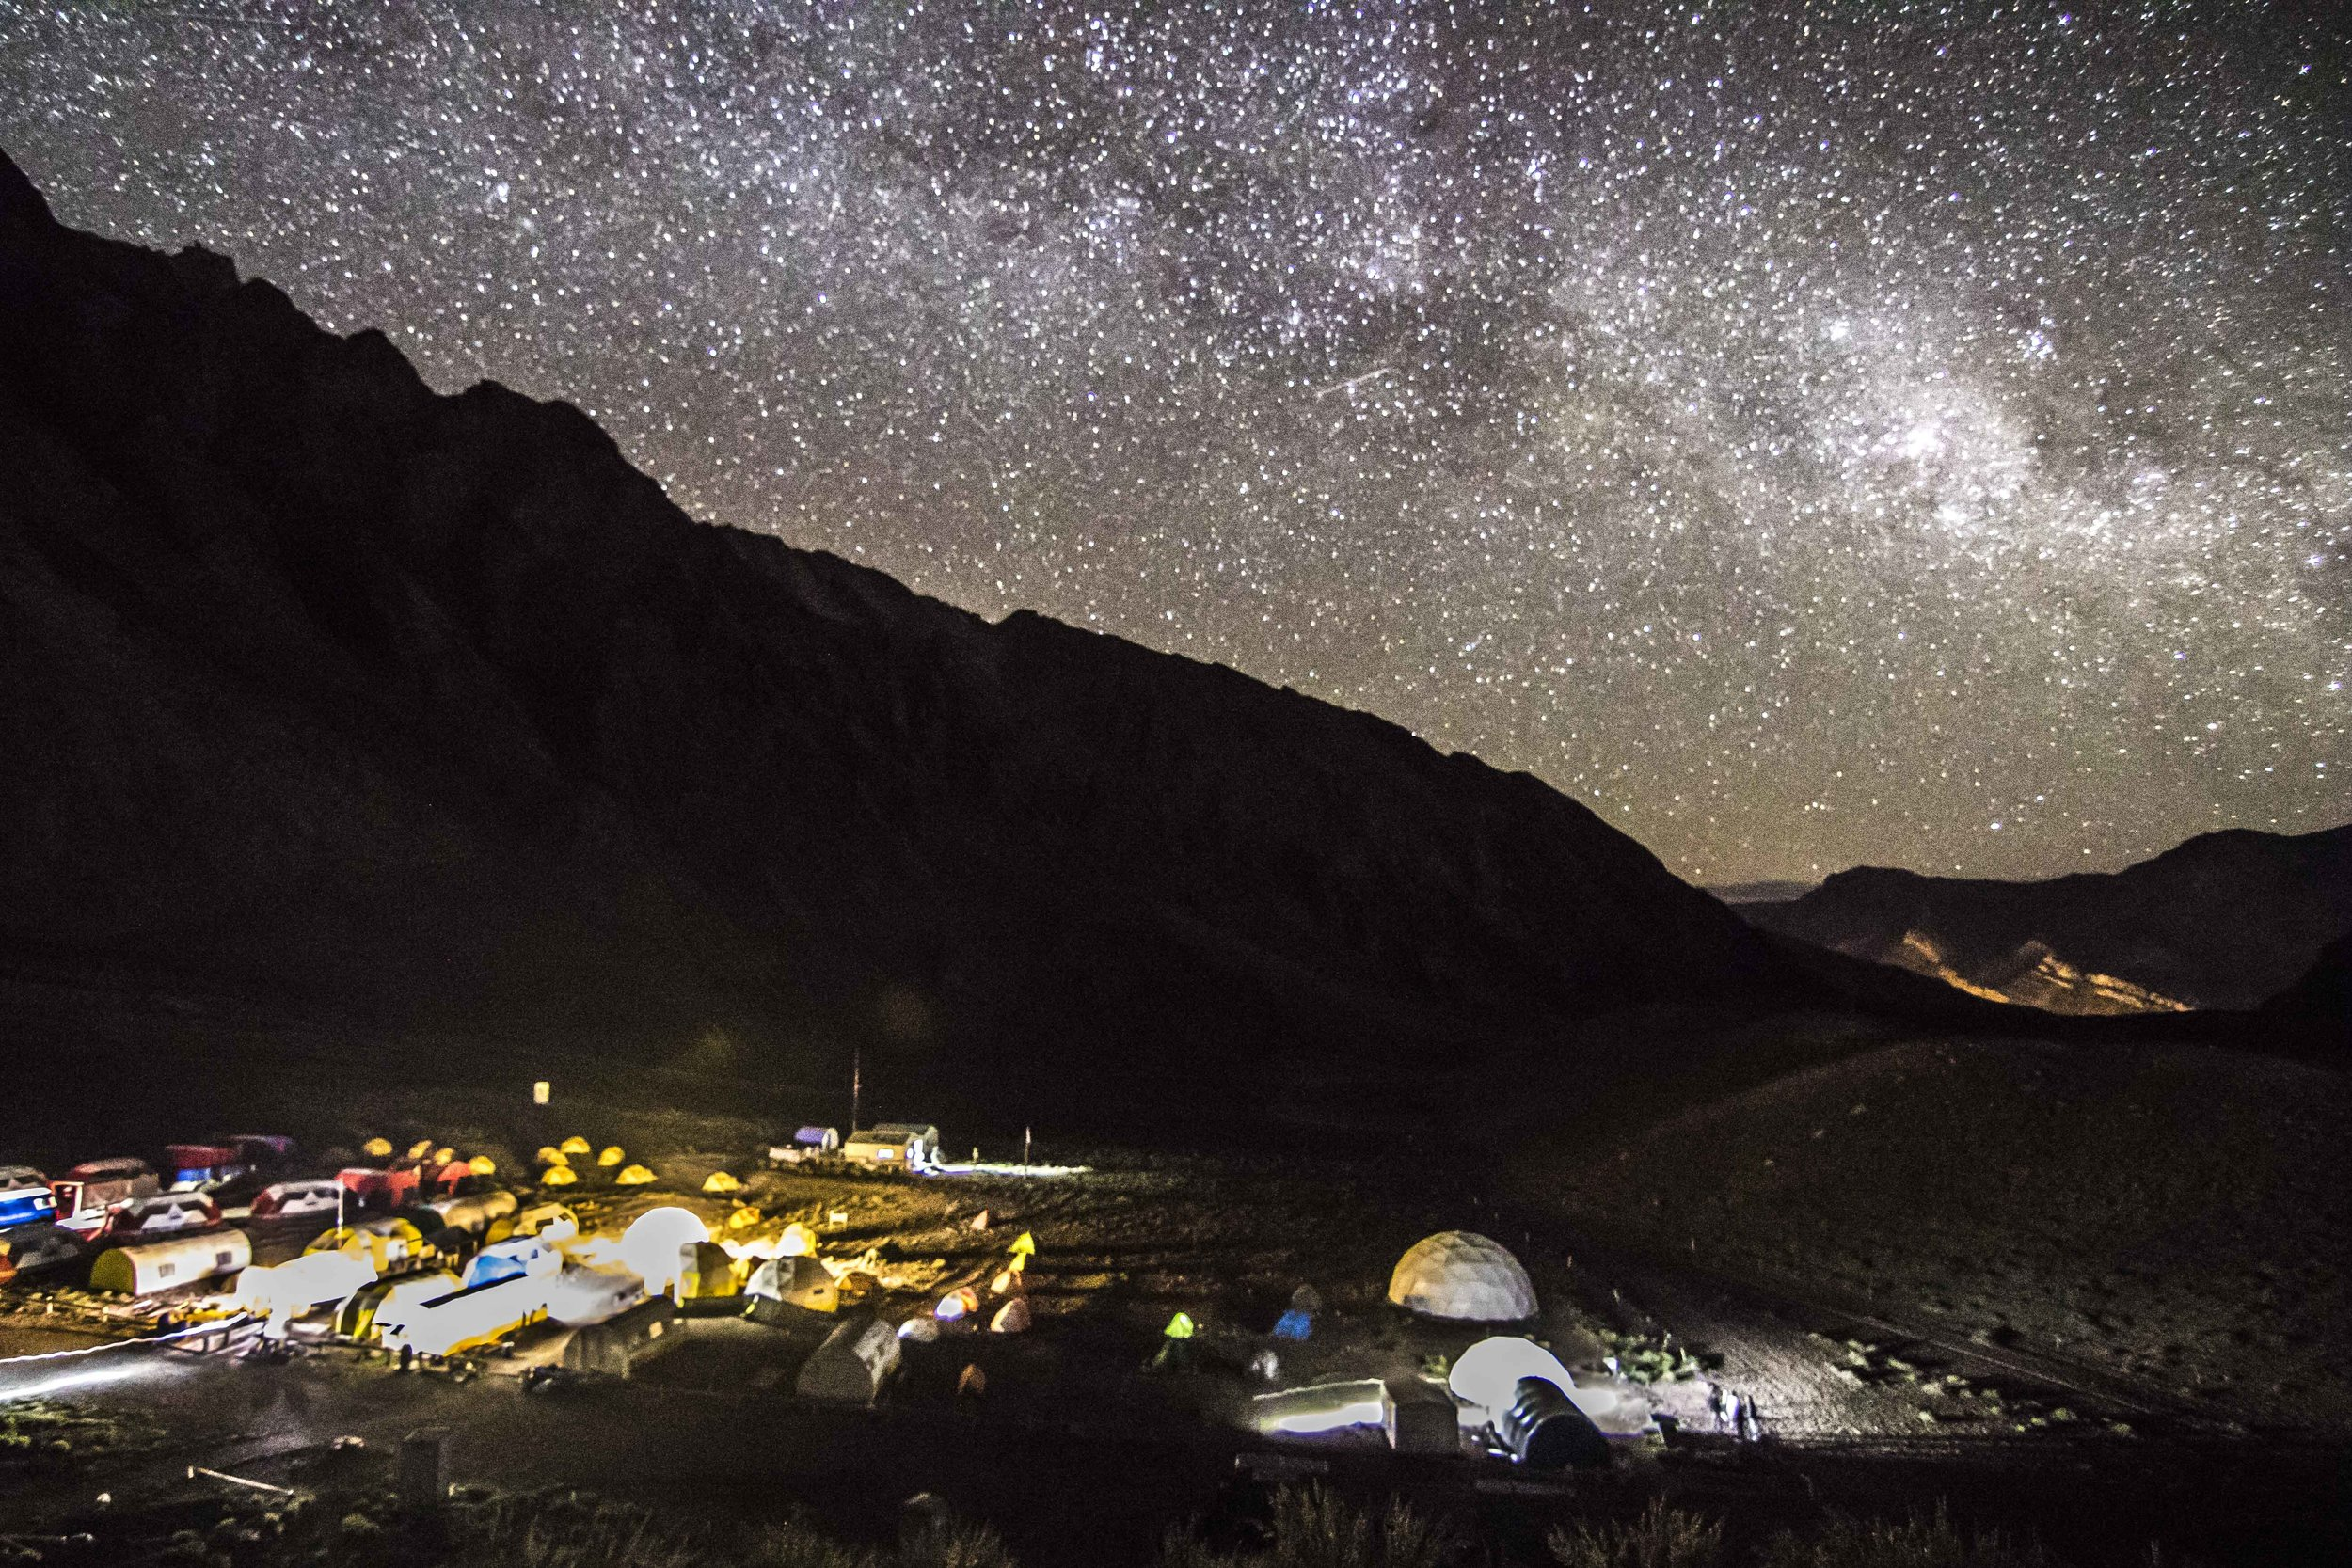 Aconcagua at night